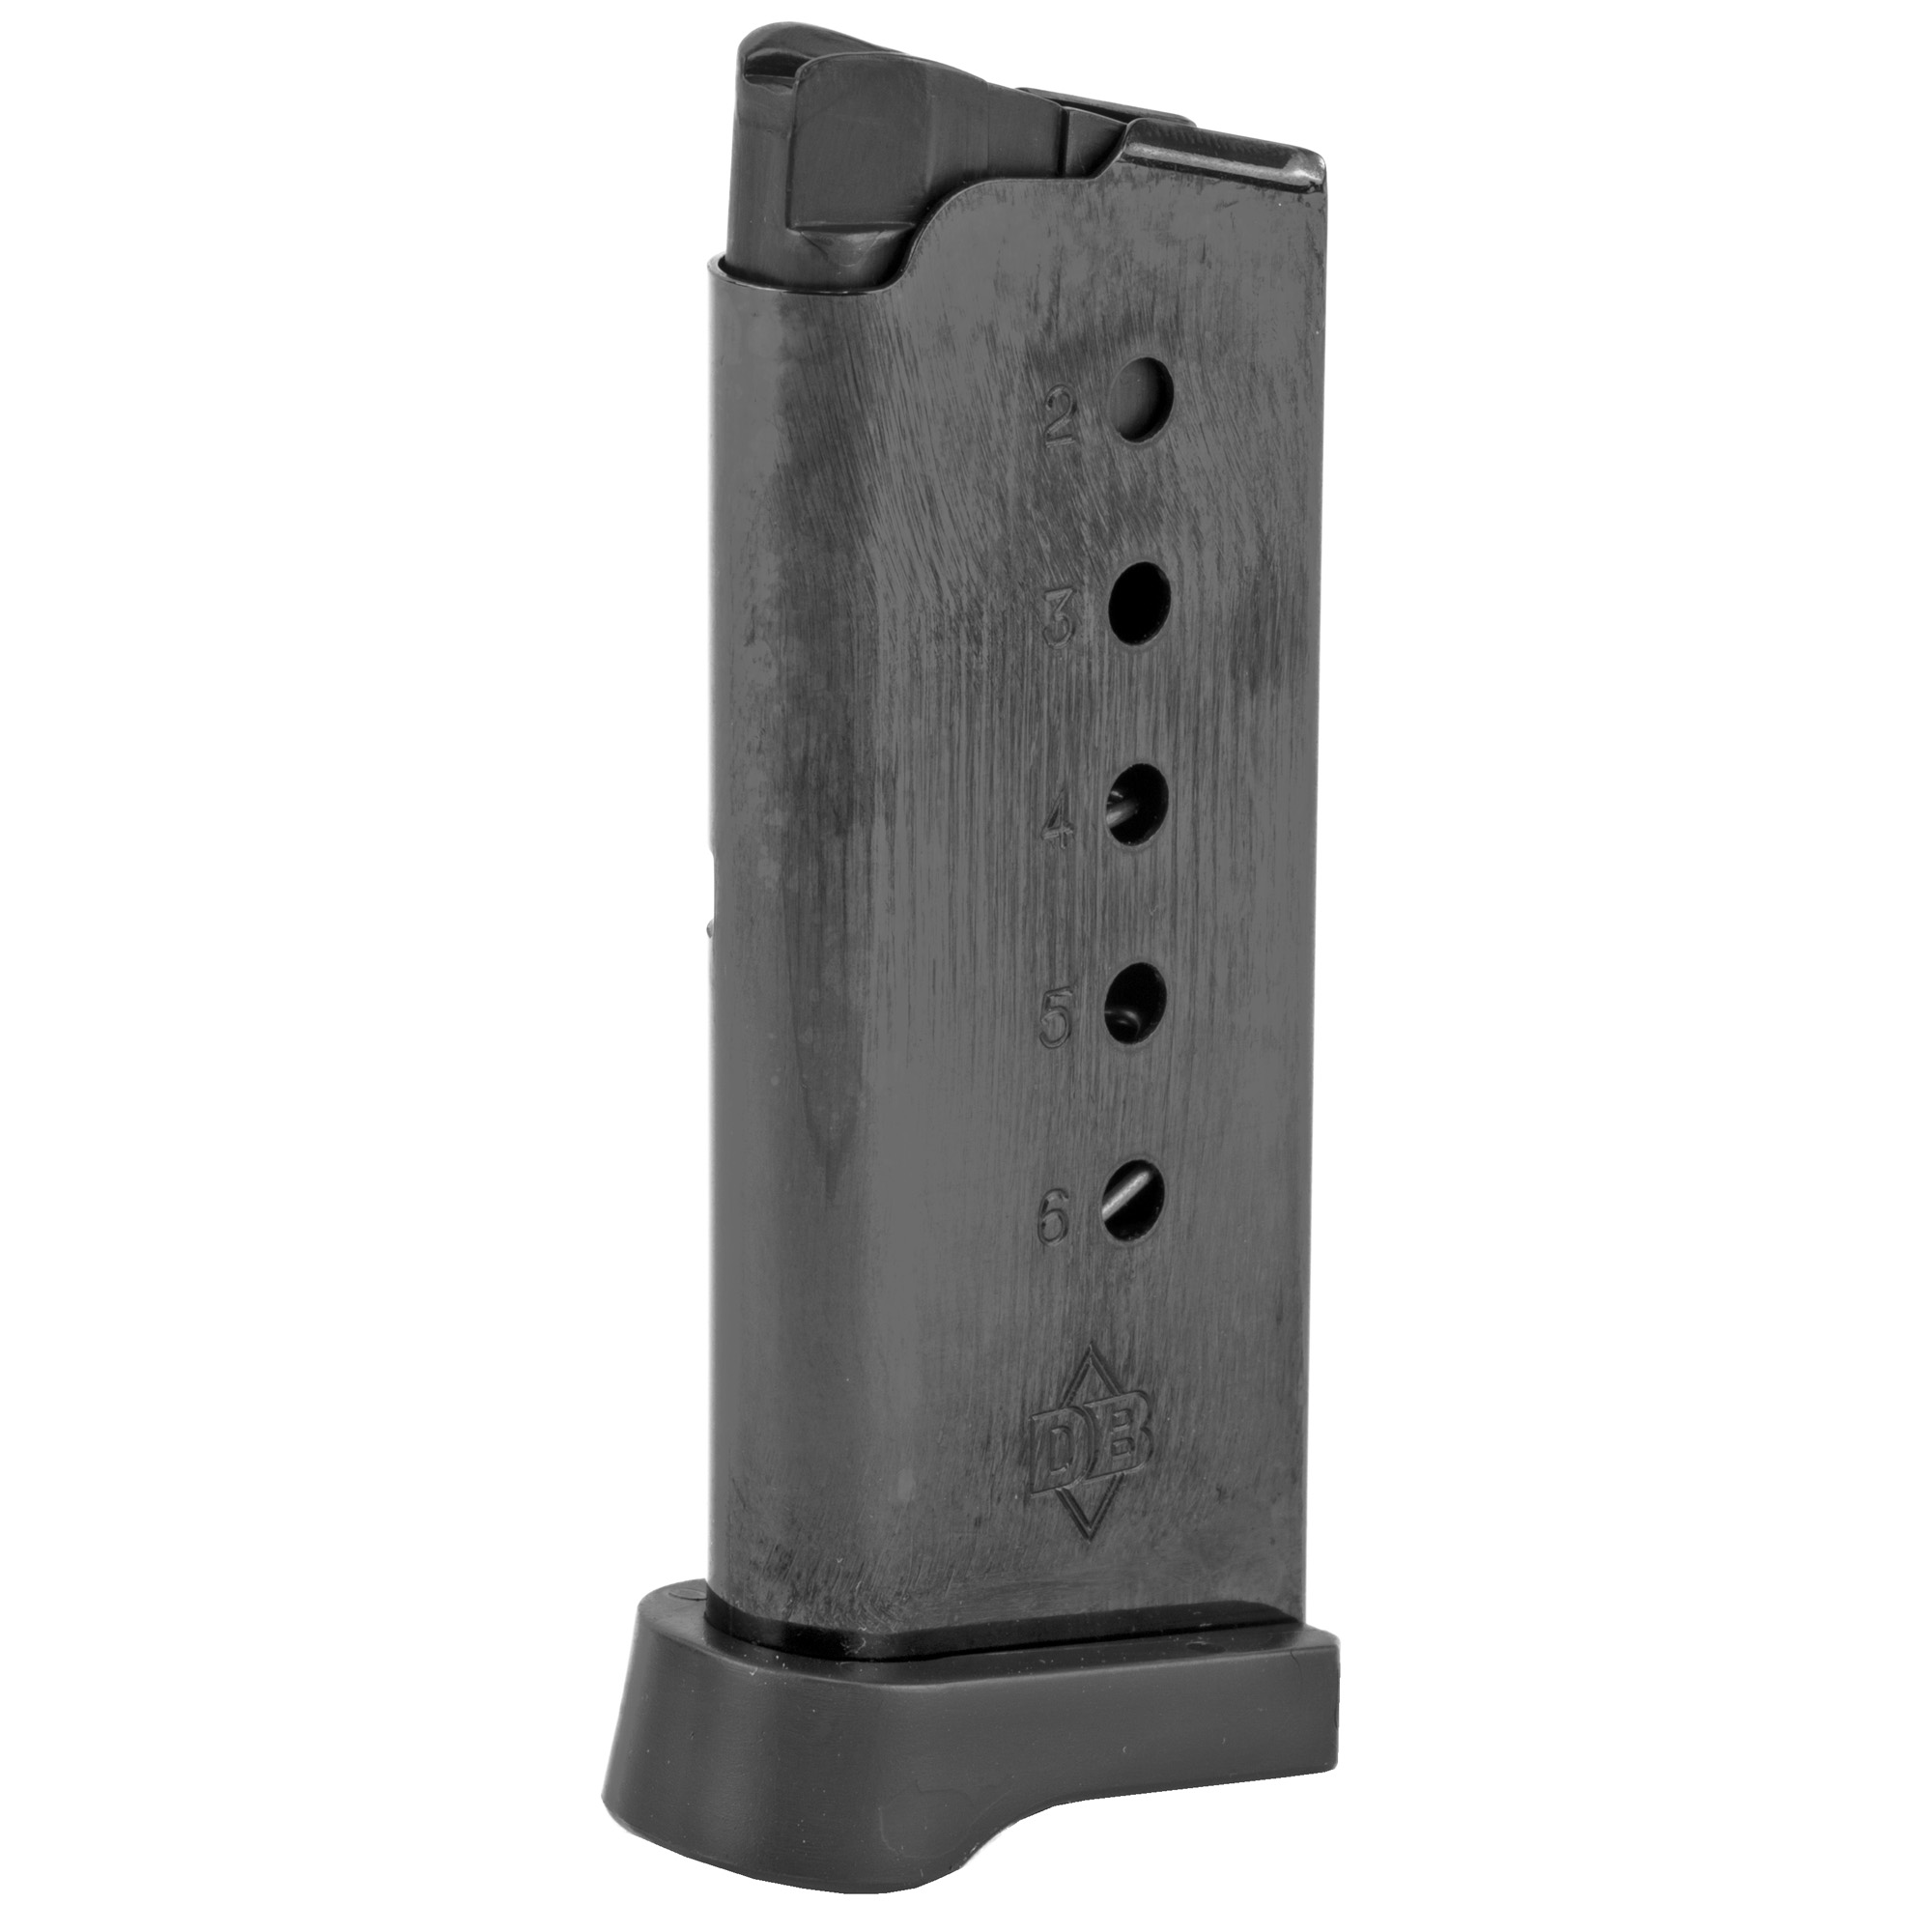 This magazine fits DB9 models and holds 6 rounds of 9mm ammunition. It features a metal alloy body and is made using the same manufacturing and materials as the original equipment magazines